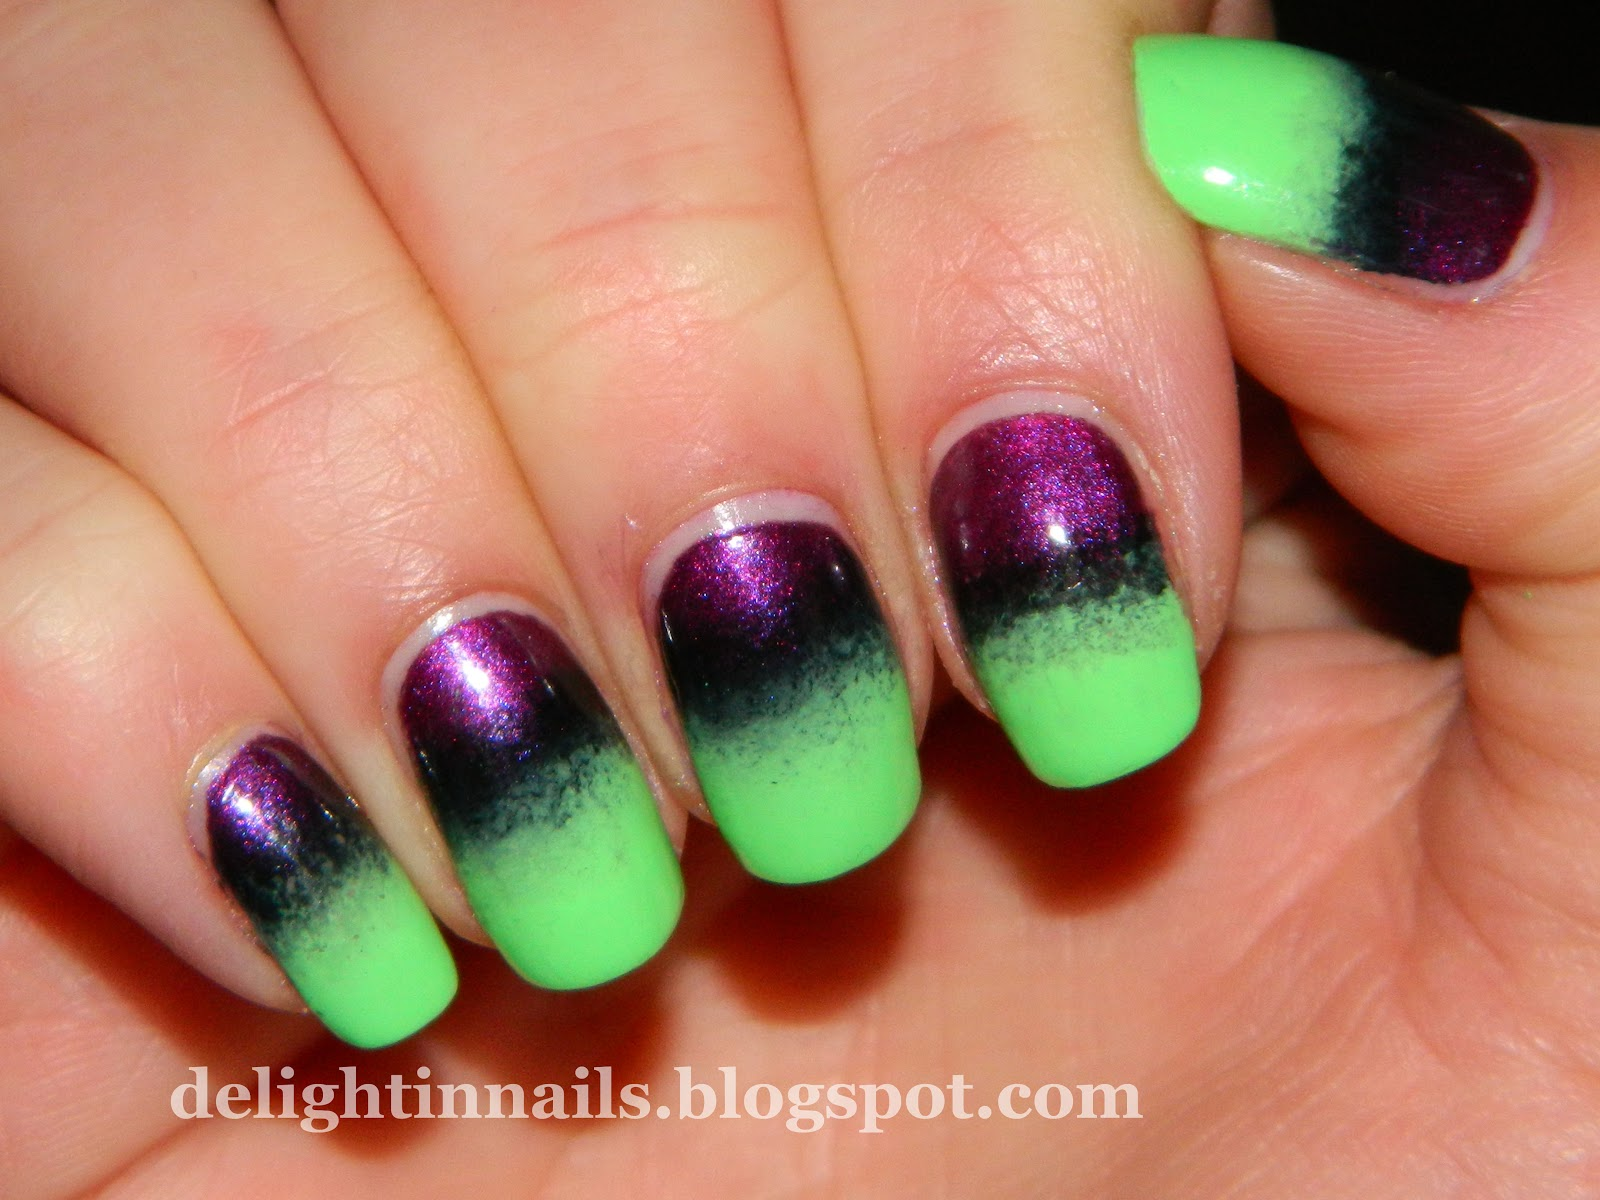 Delight In Nails: Nail-Aween Nail Art Challenge - Matte ...